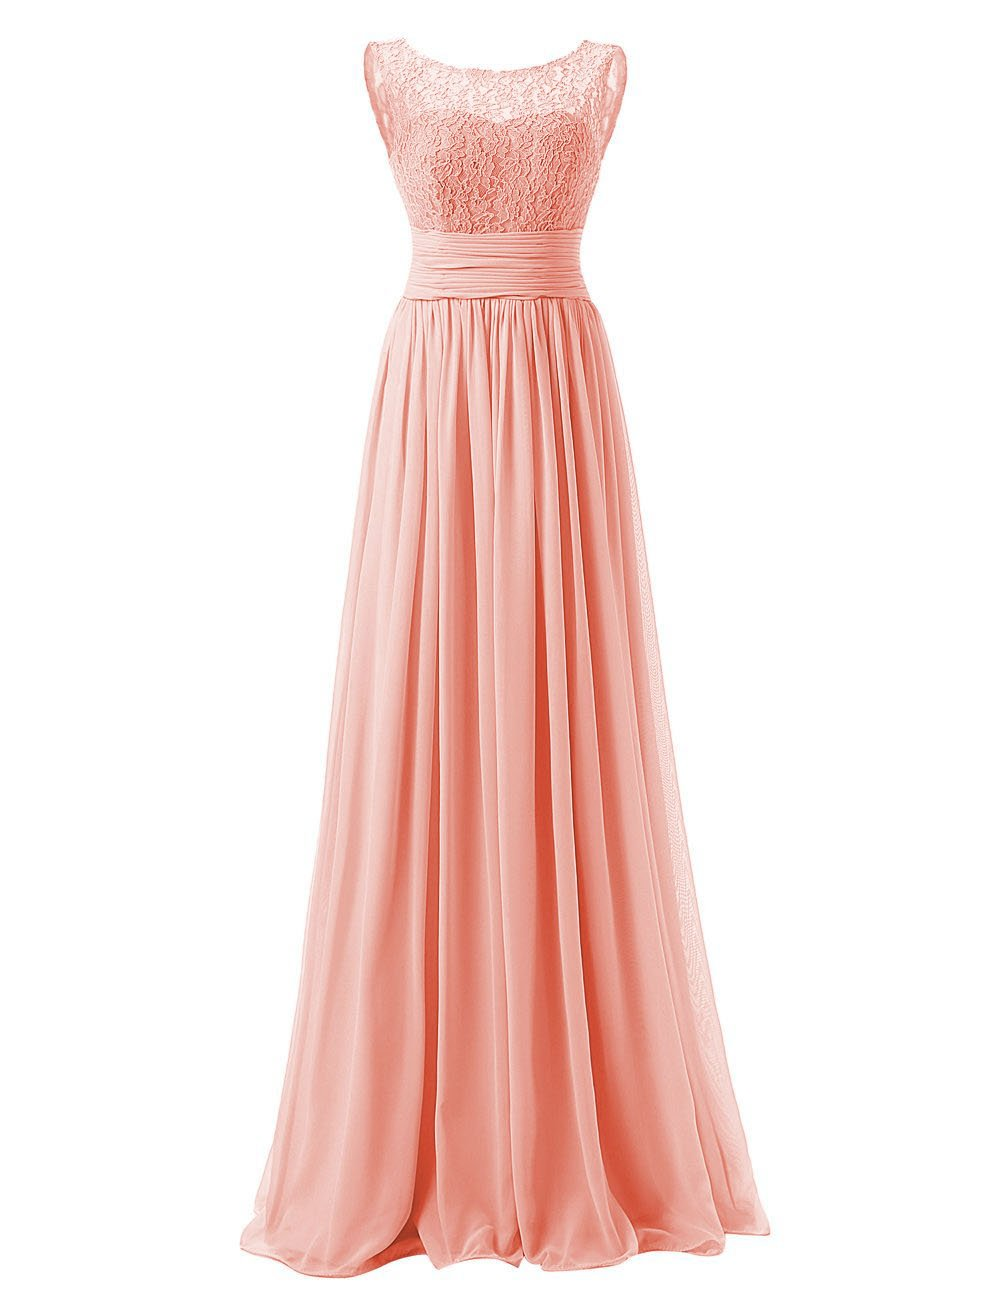 Available at Amazon: Bridesmaid Dresses Long Evening Gowns Chiffon Wedding Party Formal Dress Lace Bodice Maxi US 12 Peach